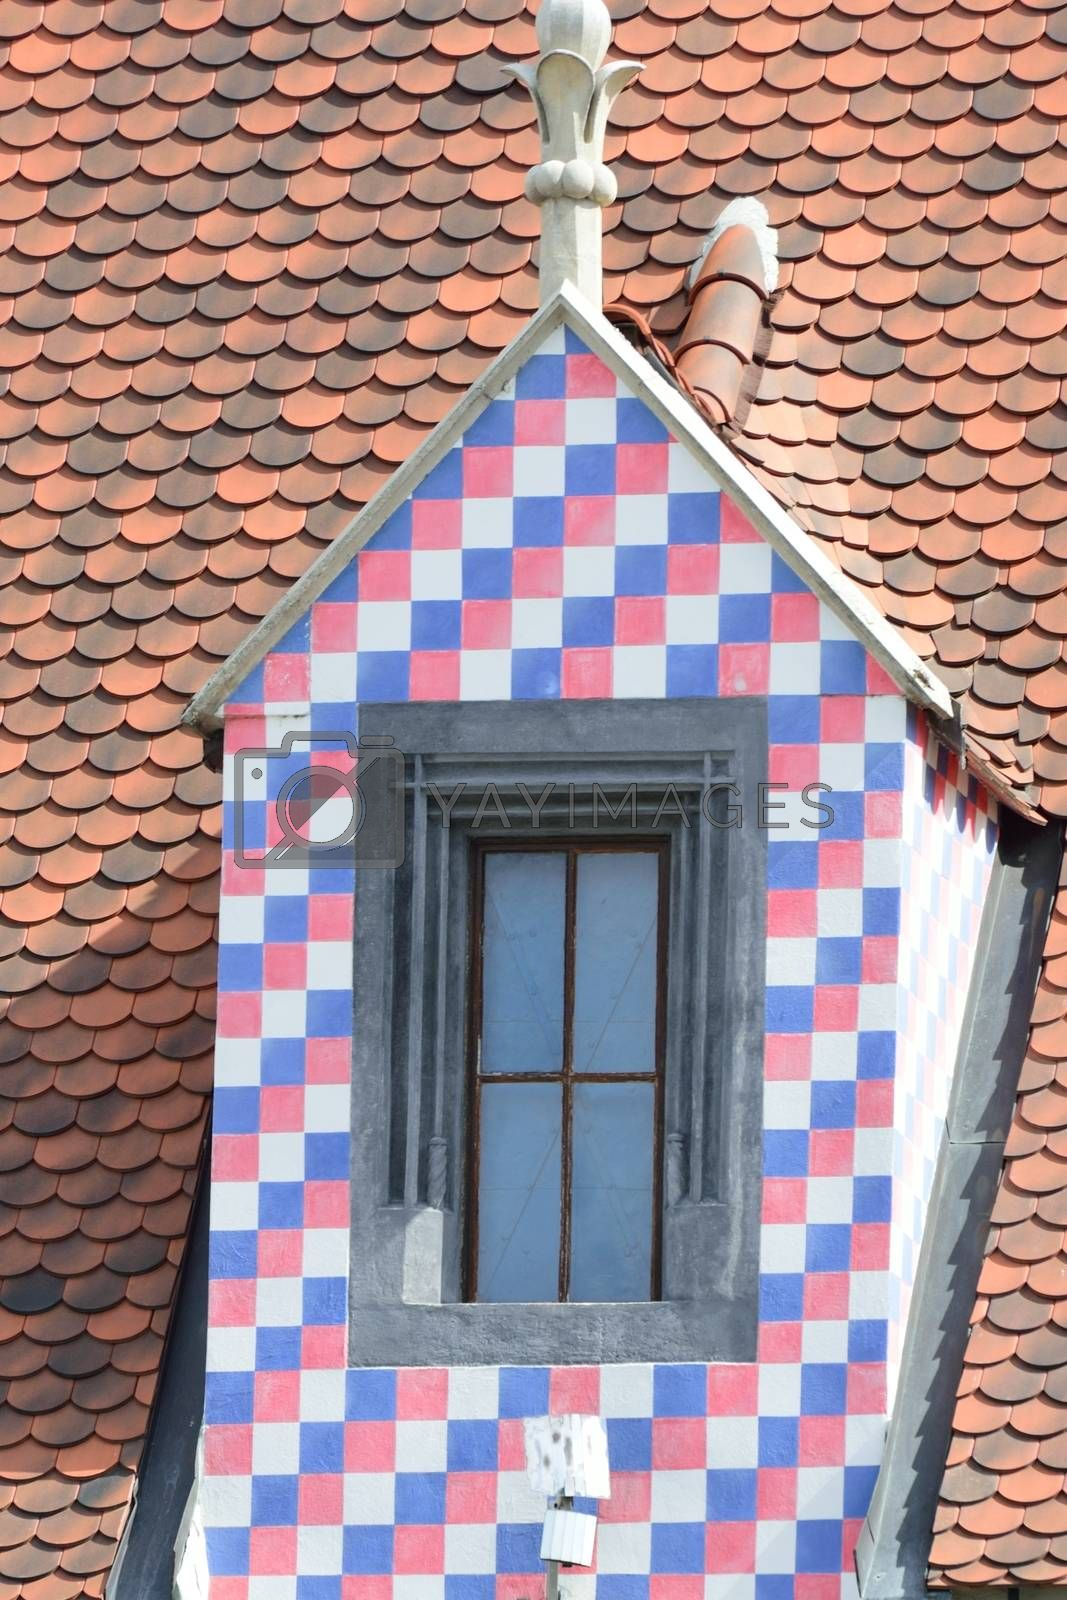 Medieval chequered windows by pauws99